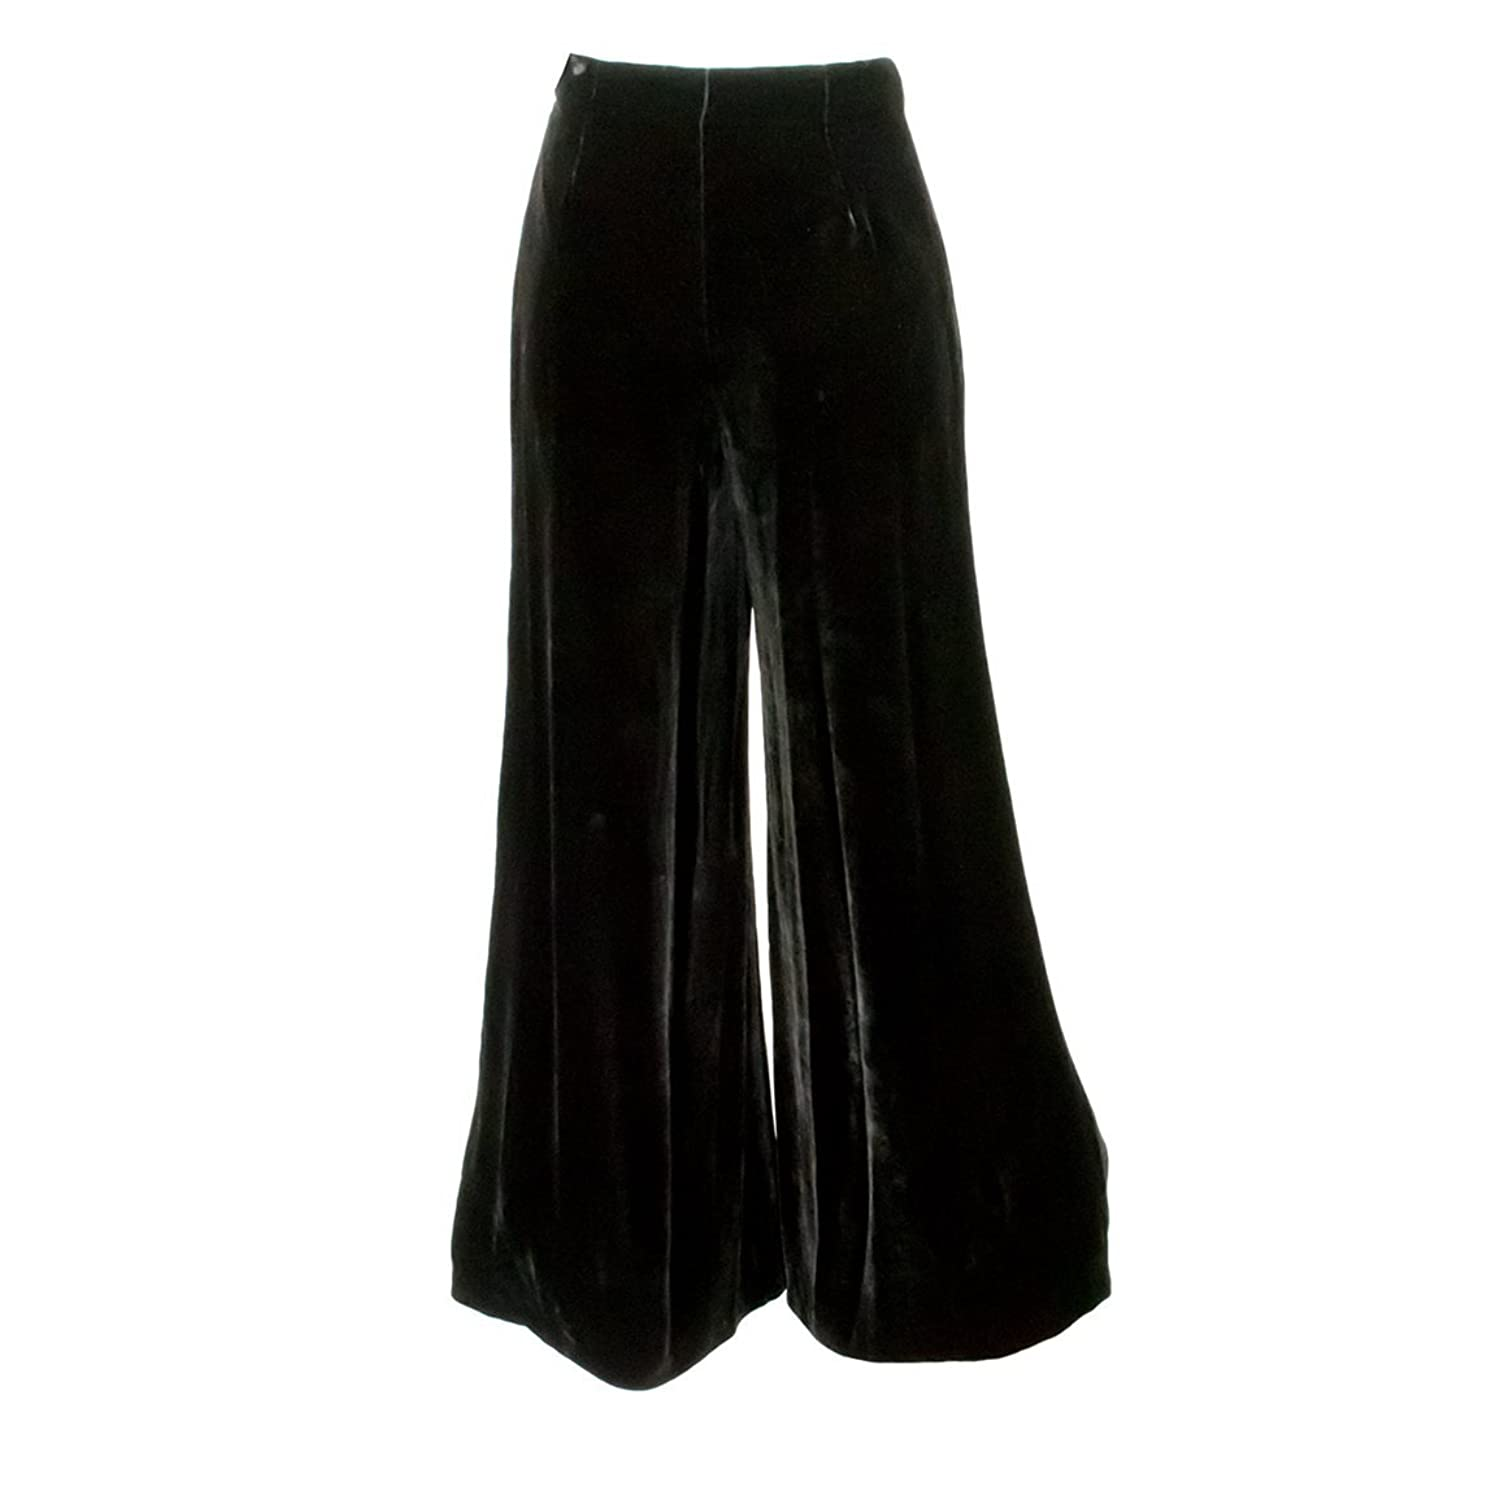 1920s Style Women's Pants, Trousers, Knickers Palazzo Party Pants $217.35 AT vintagedancer.com